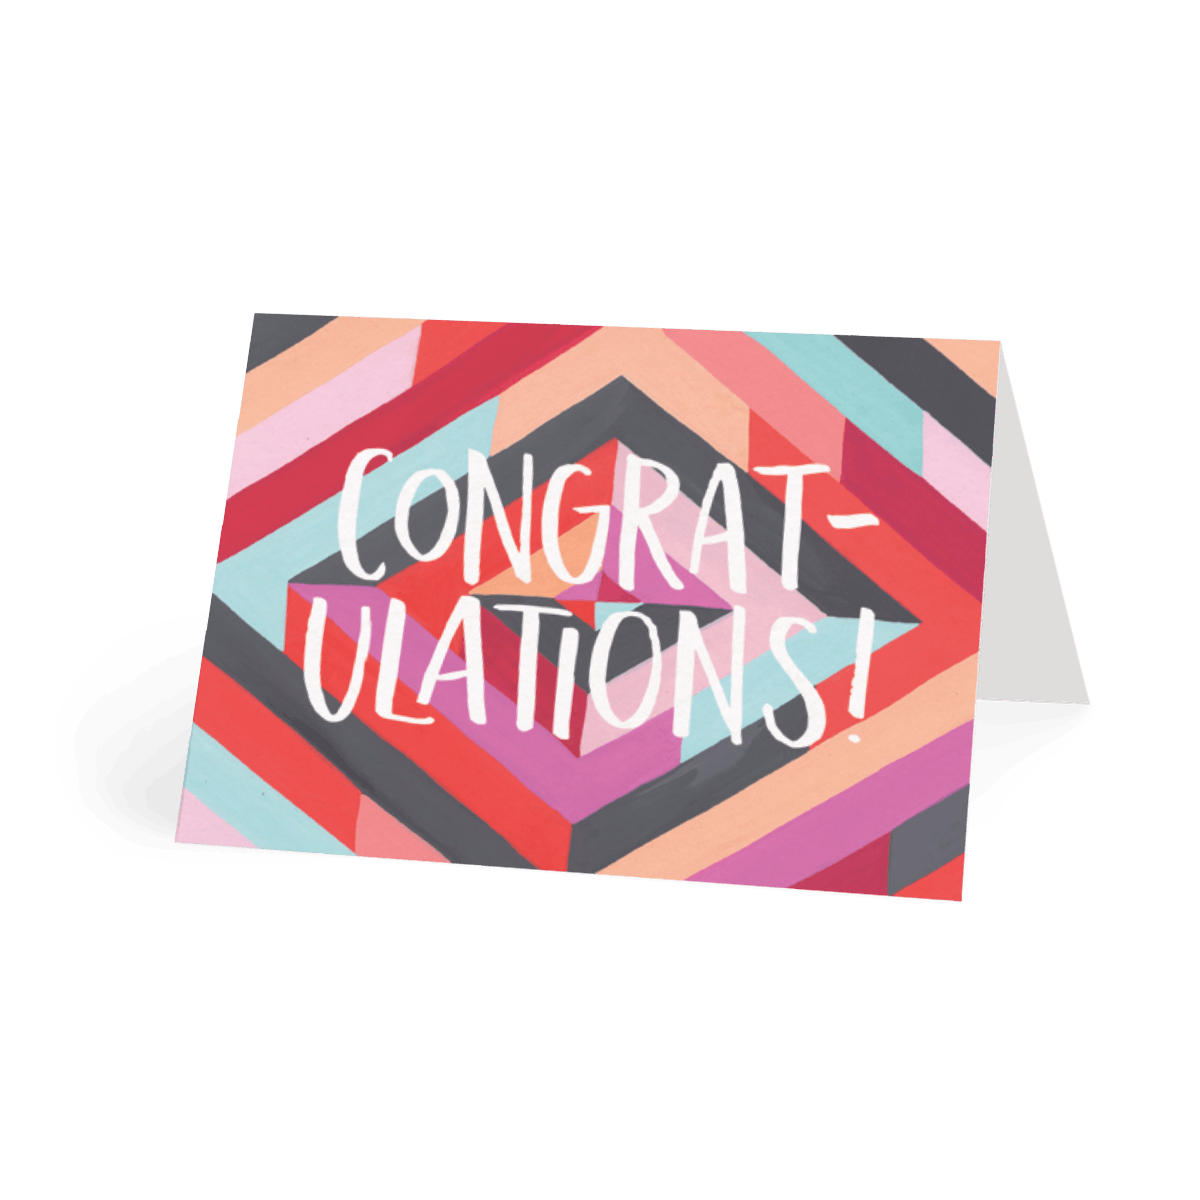 Https%3a%2f%2fwww.papier.com%2fproduct image%2f1442%2f14%2fcongratulations diamonds 400 front 1453909888.png?ixlib=rb 1.1